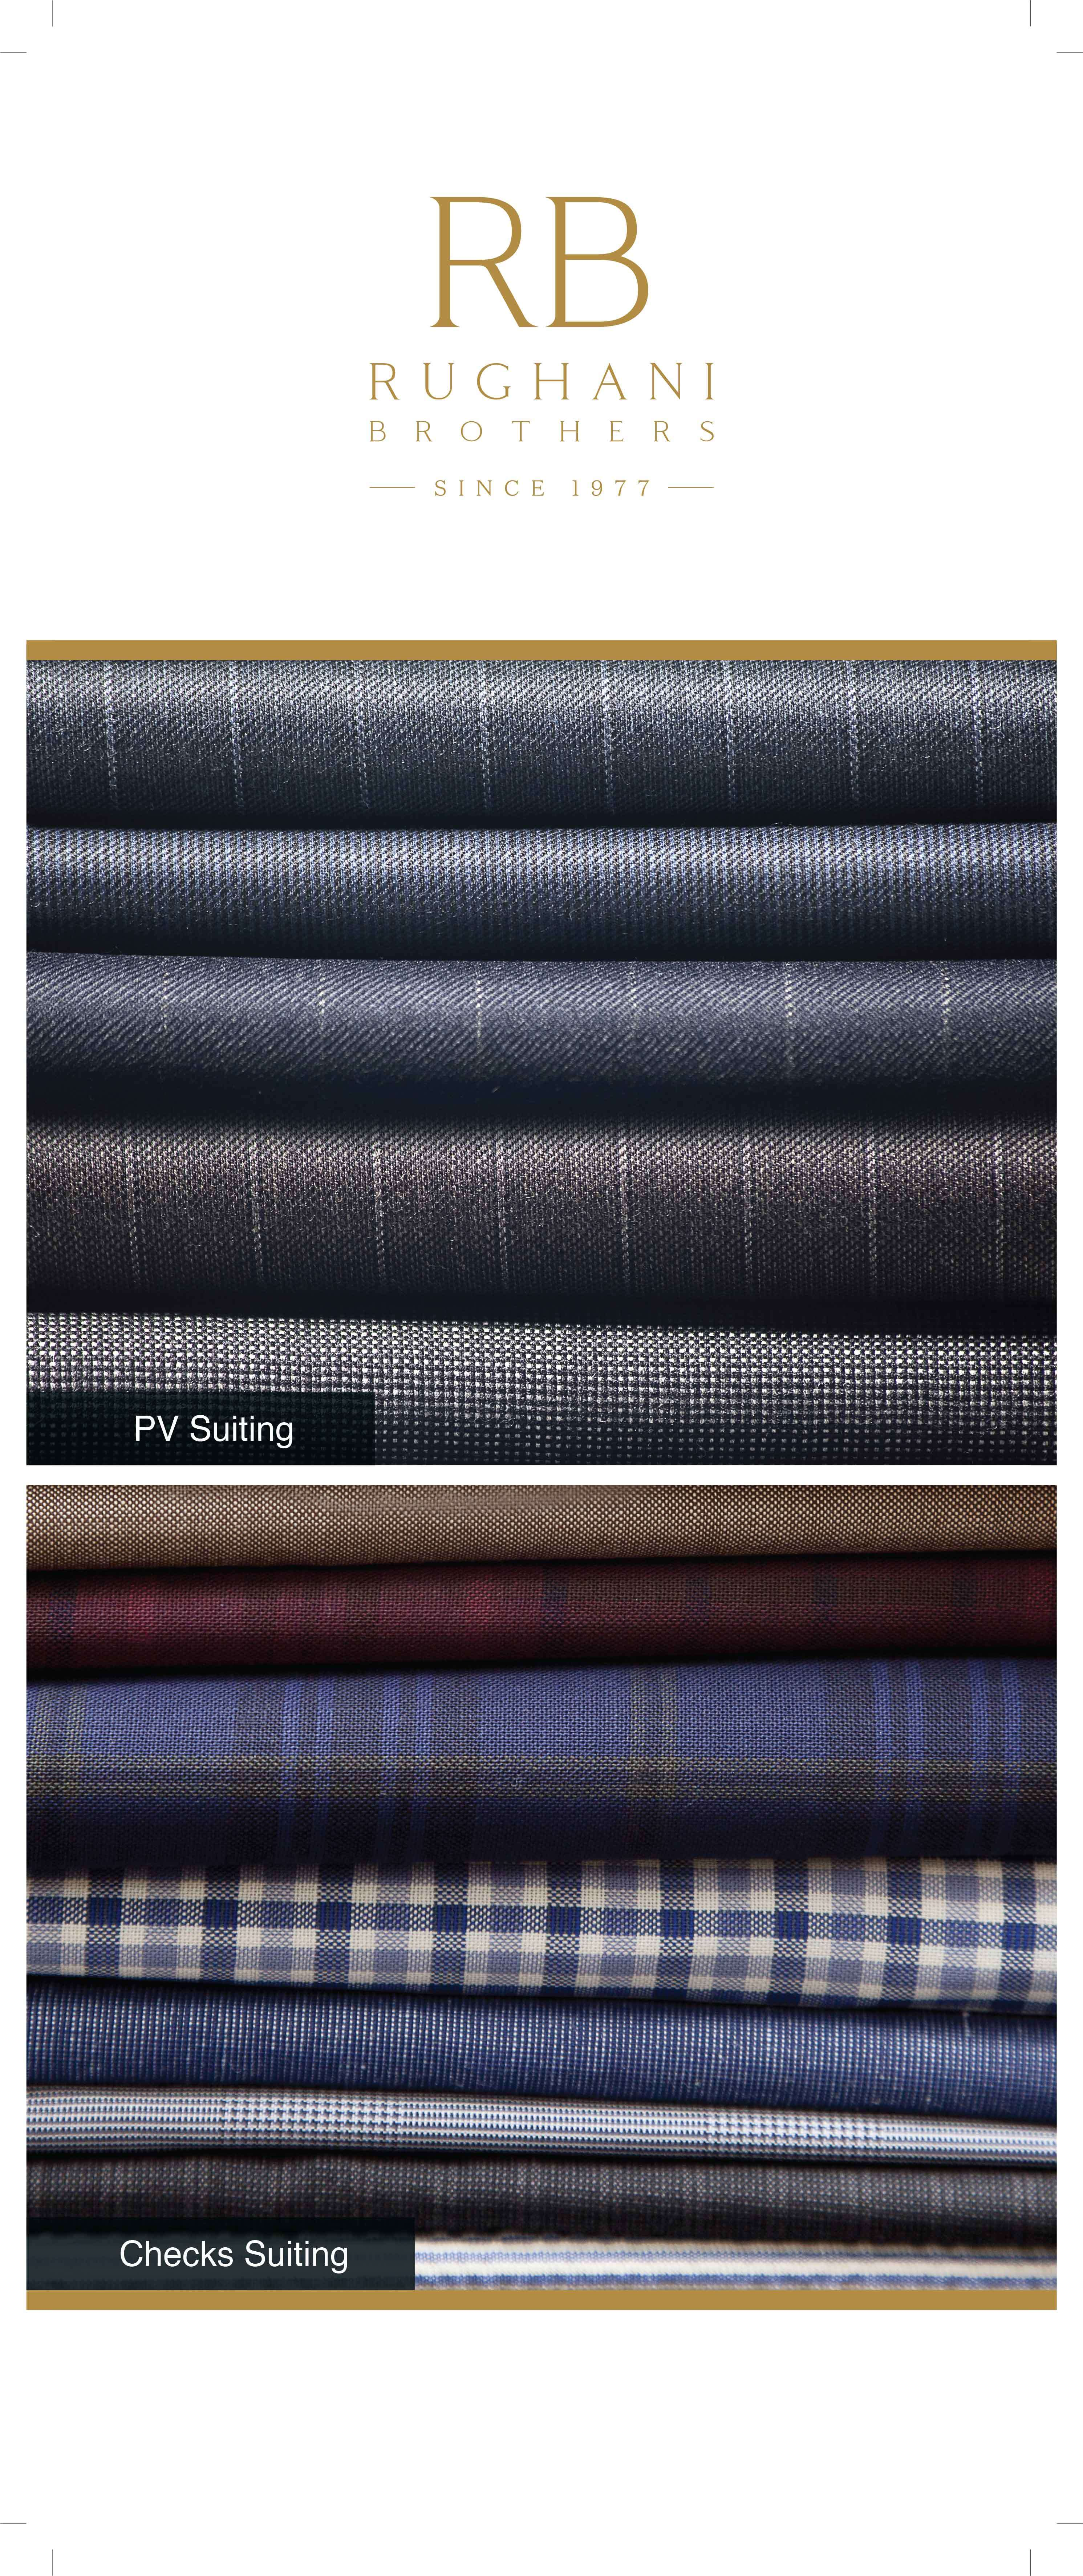 PV Suiting